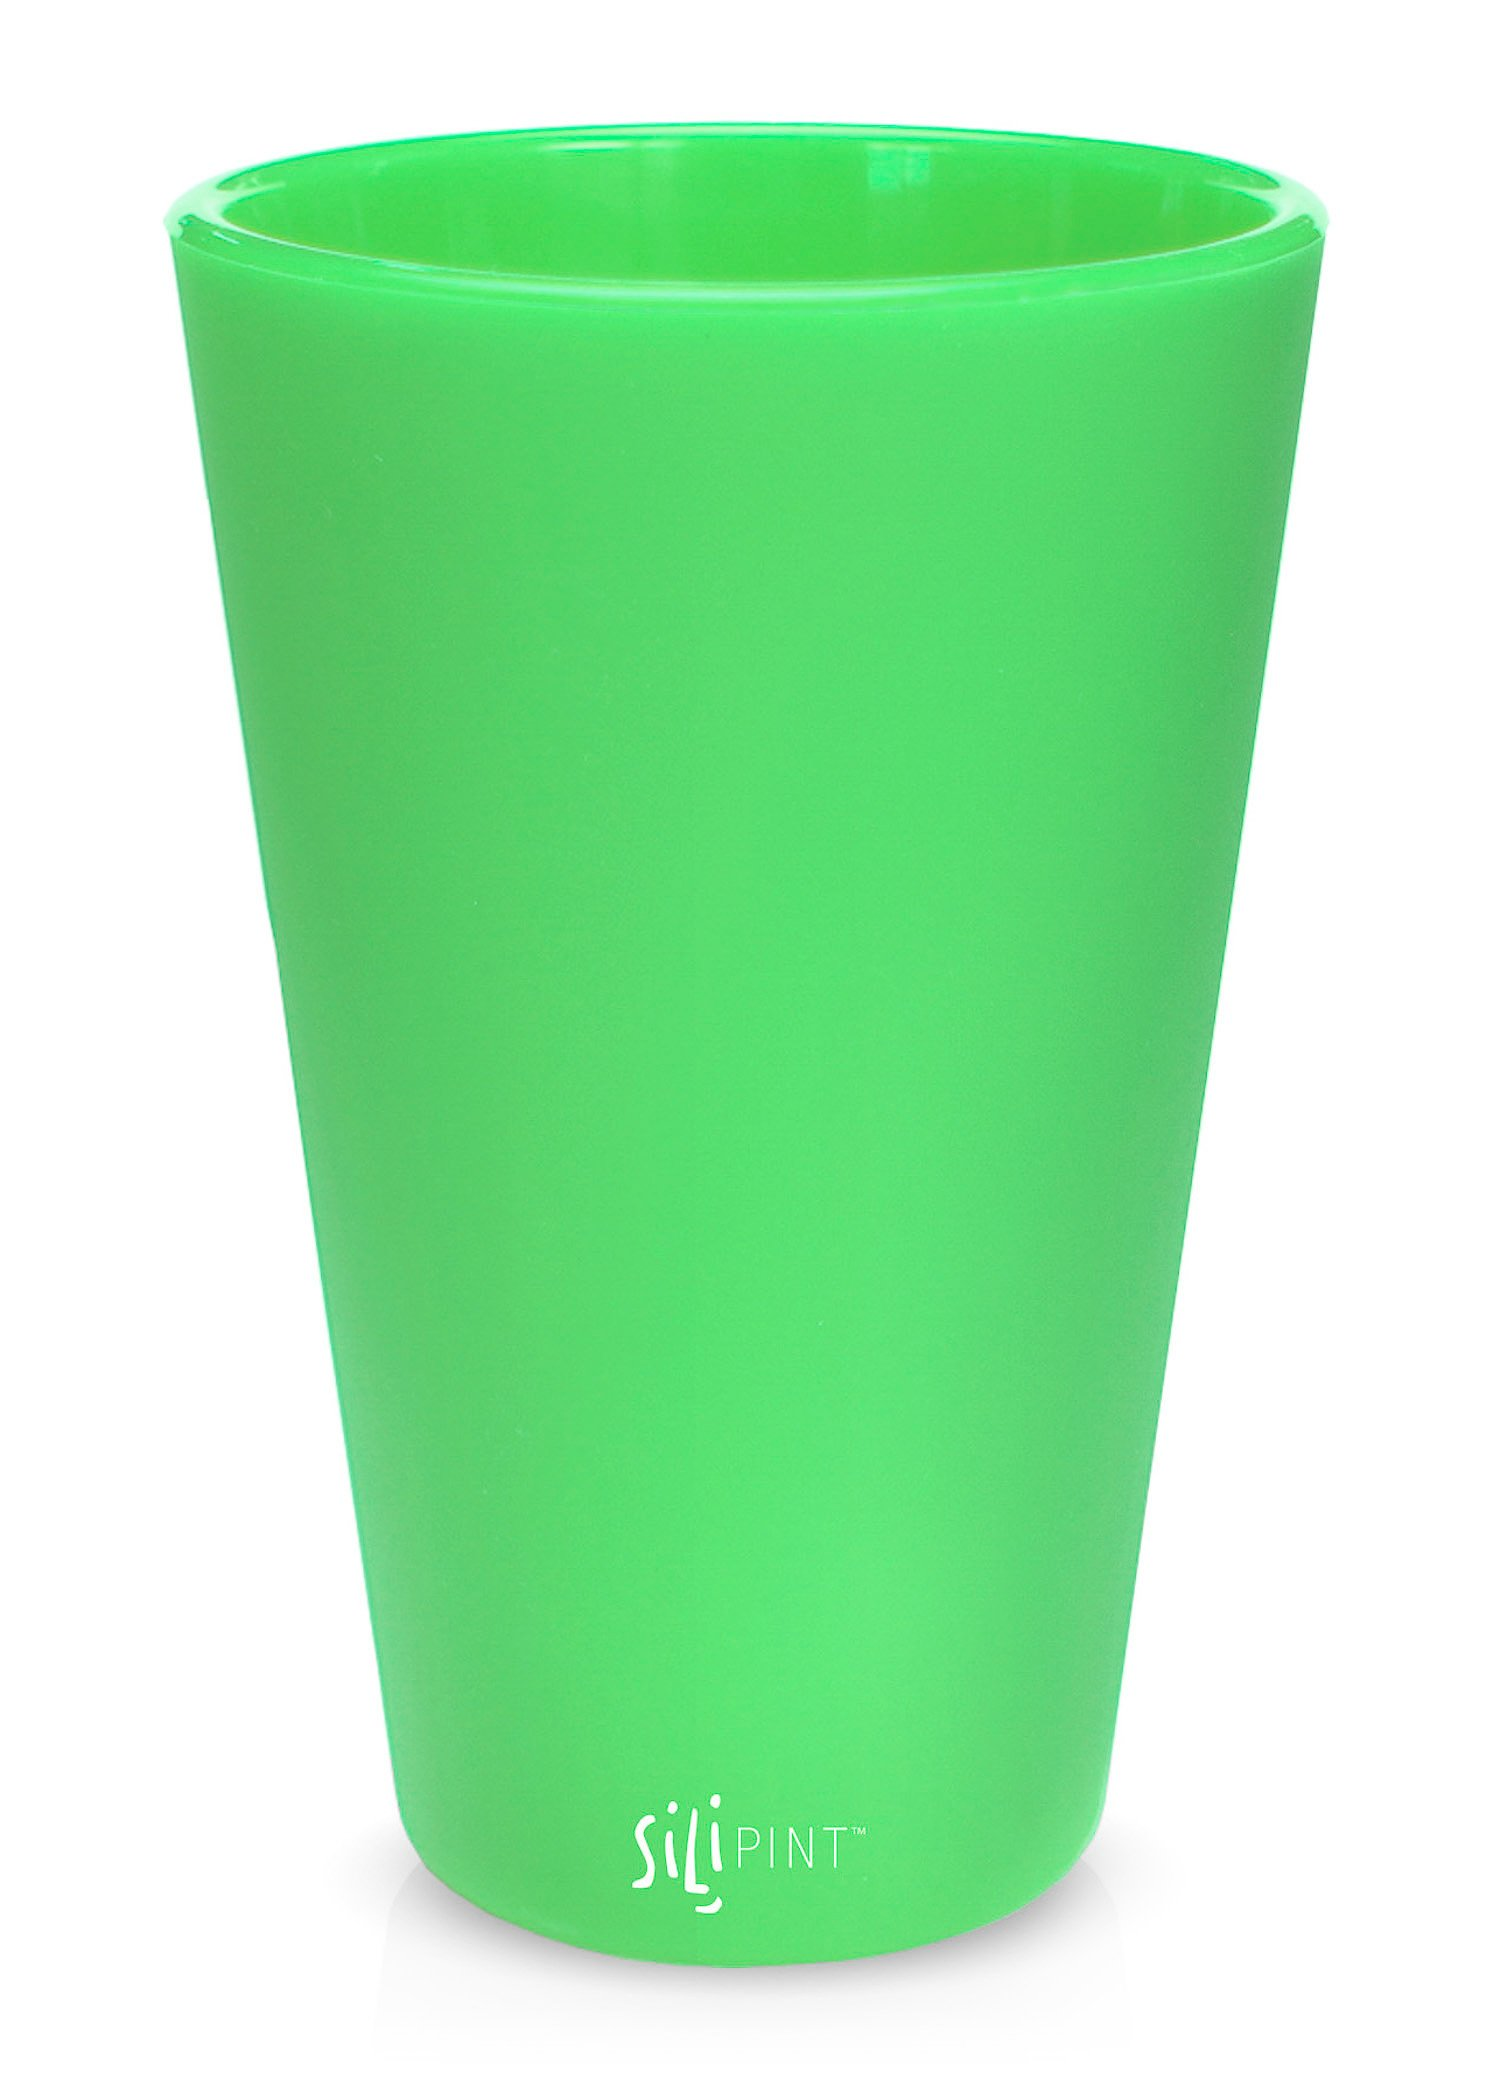 Silipint Silicone Pint Glass Set, Patented, BPA-Free, Shatter-proof, Unbreakable Silicone Cup Drinkware (Single, Glow Green) by Silipint